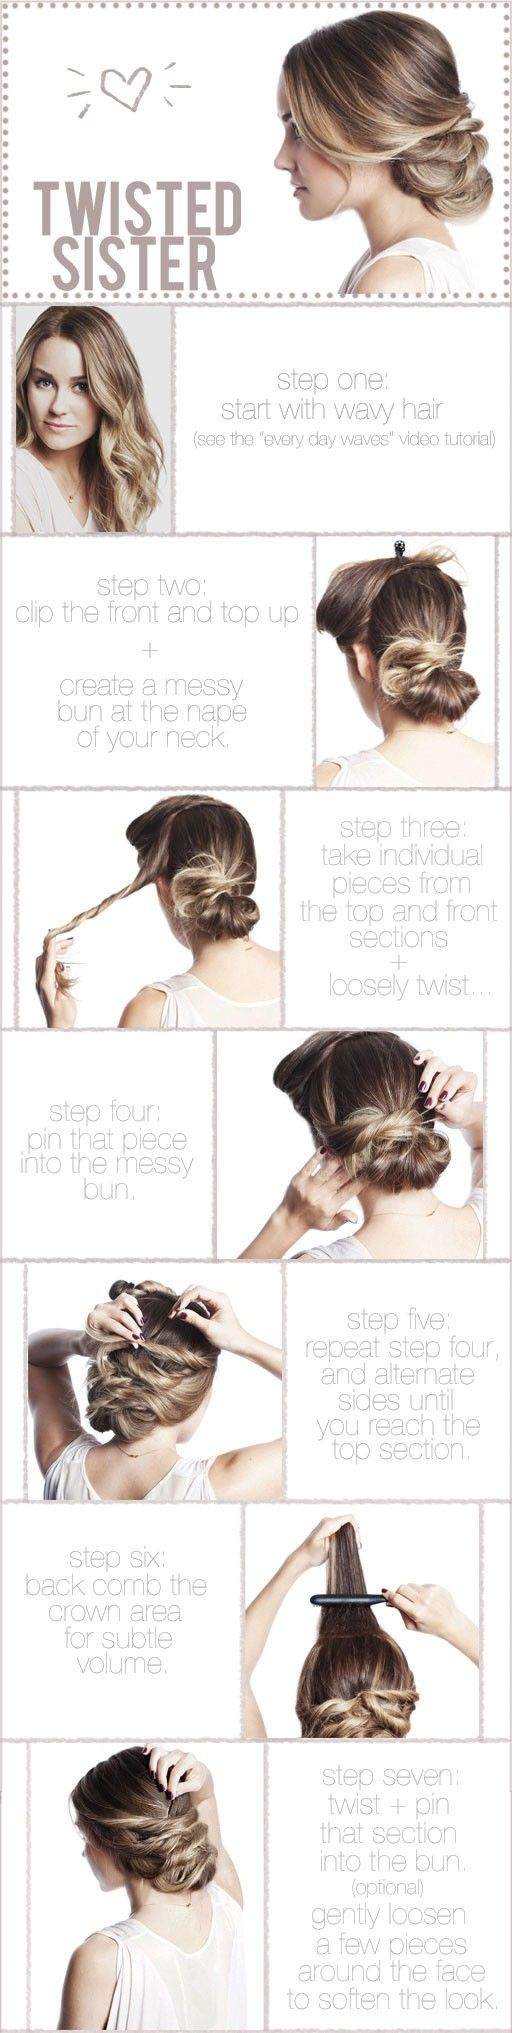 Twisted Messy BunHair Ideas, Wedding Hair, Hair Tutorials, Long Hair, Messy Buns, Twists Sisters, Hair Style, Lauren Conrad, Updo